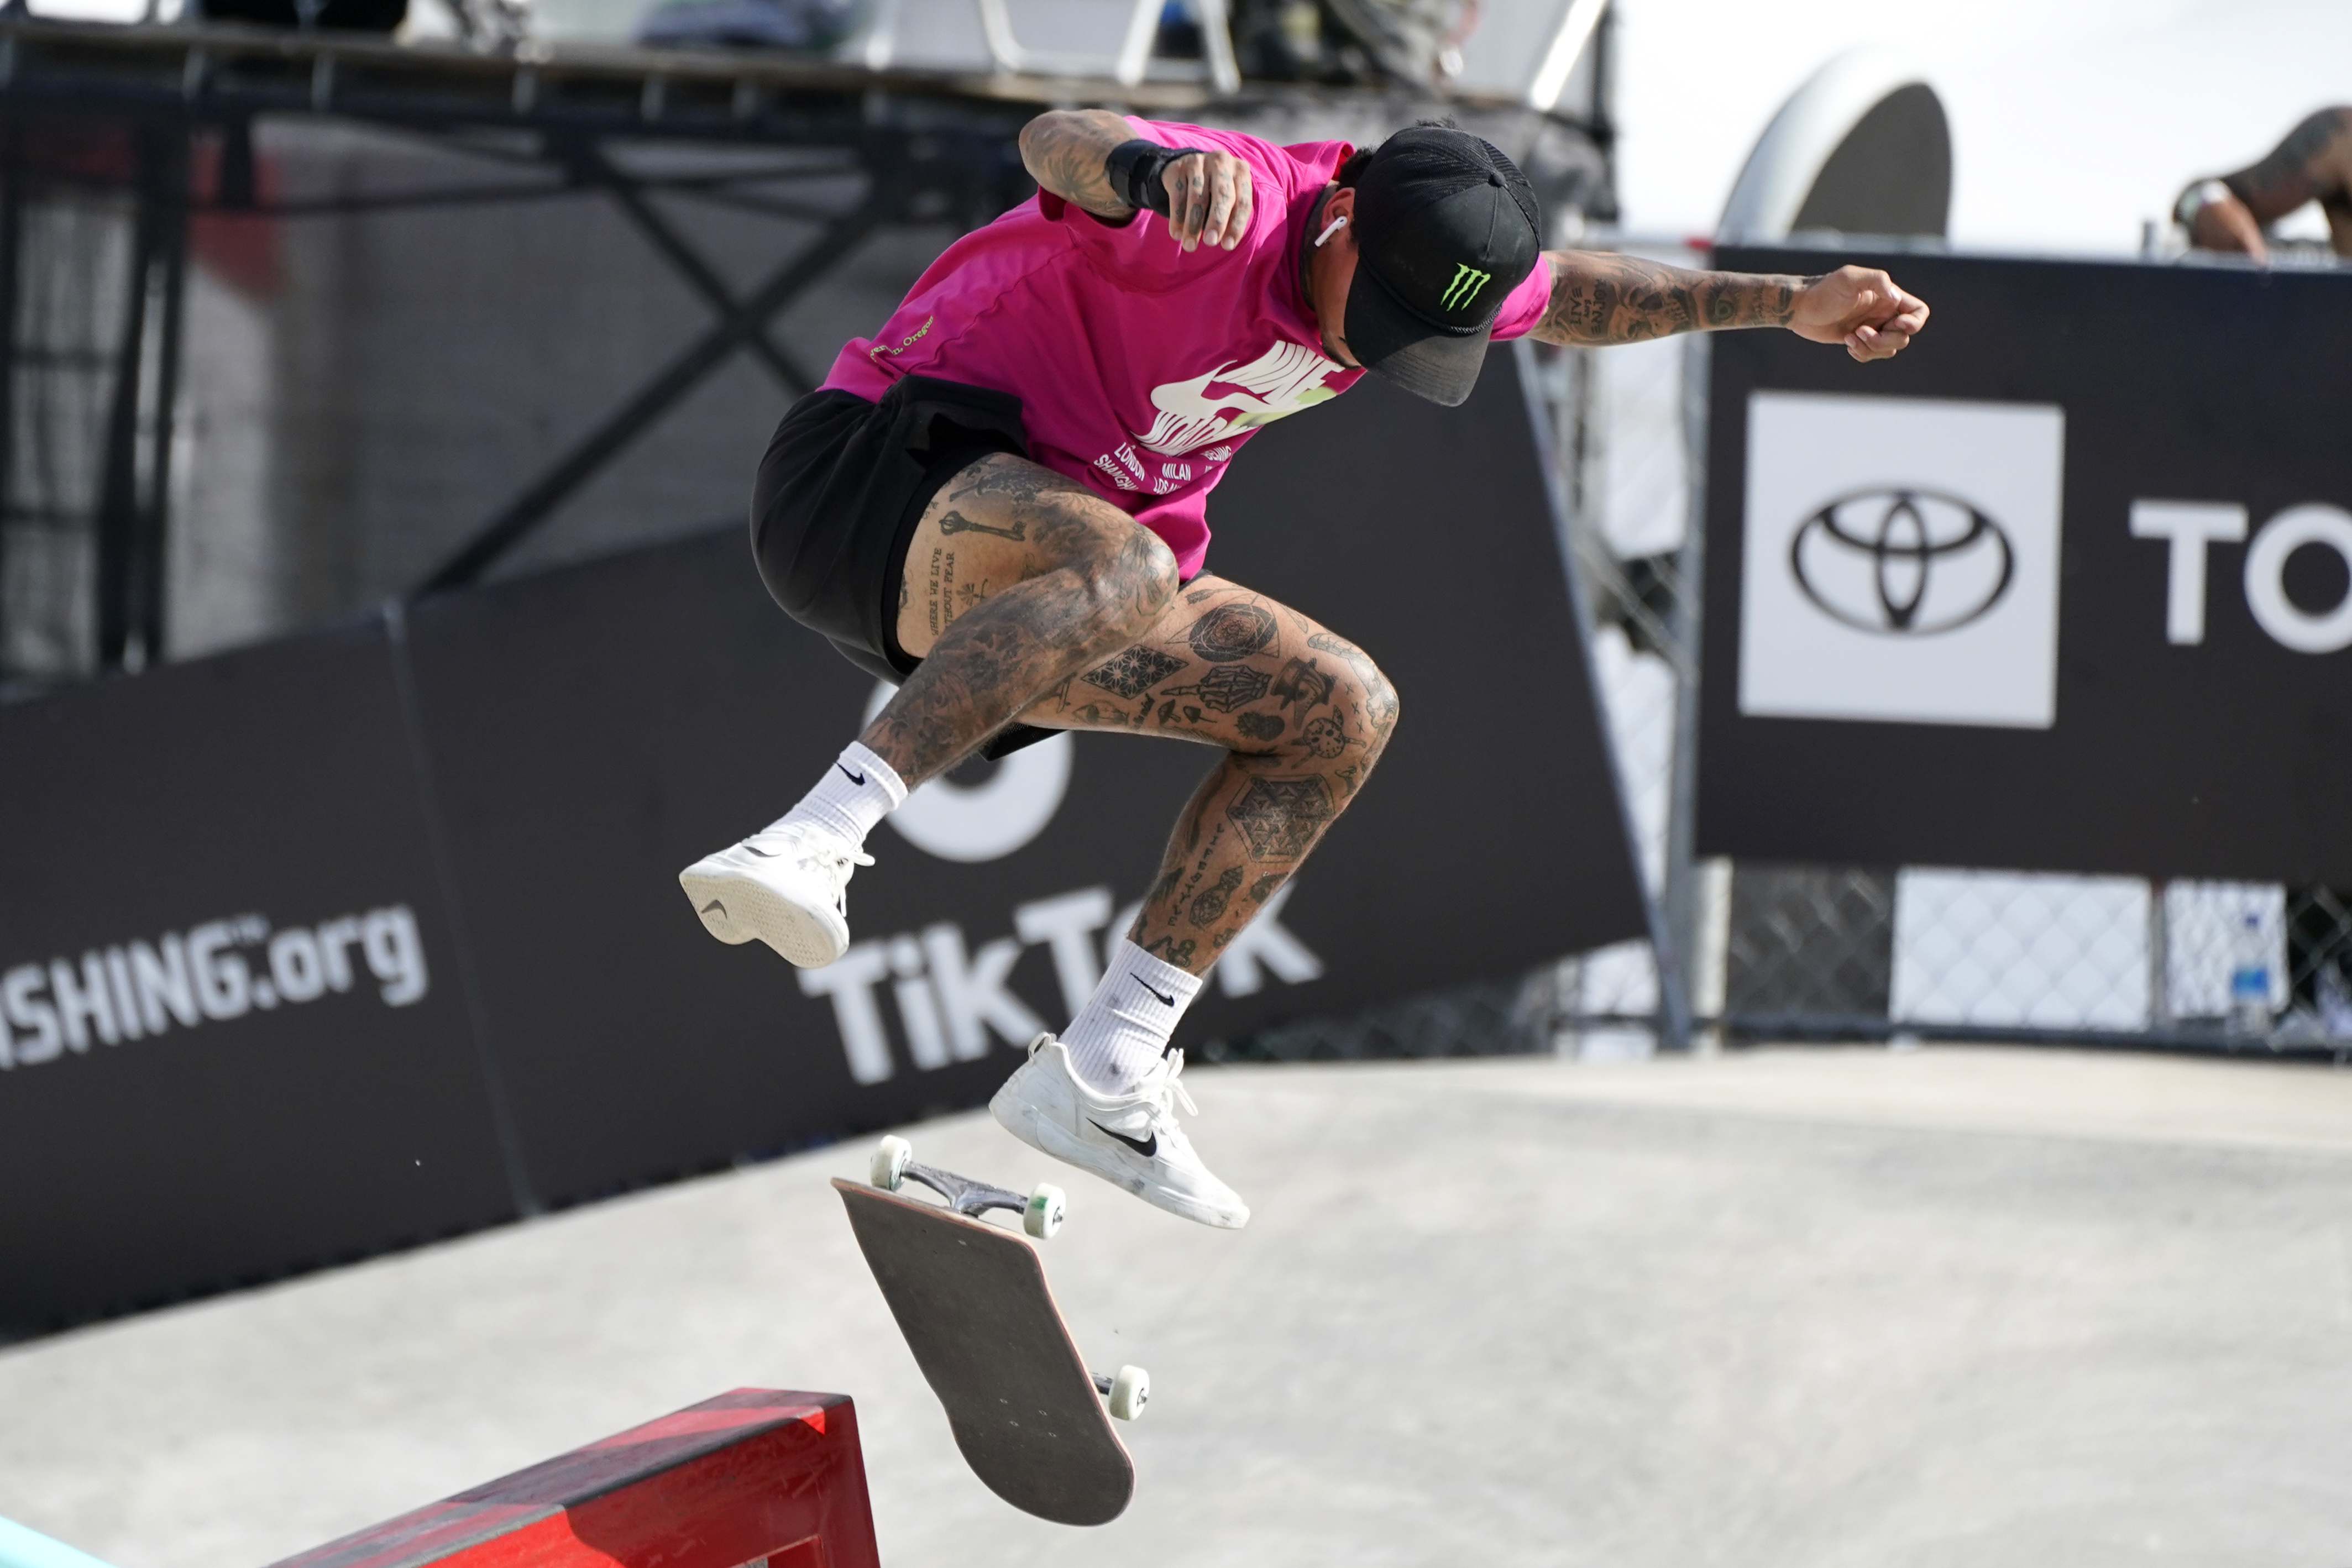 Nyjah Huston, of the United States, competes in the men's Street Final during an Olympic qualifying skateboard event at Lauridsen Skatepark, Sunday, May 23, 2021, in Des Moines, Iowa. (AP Photo/Charlie Neibergall)